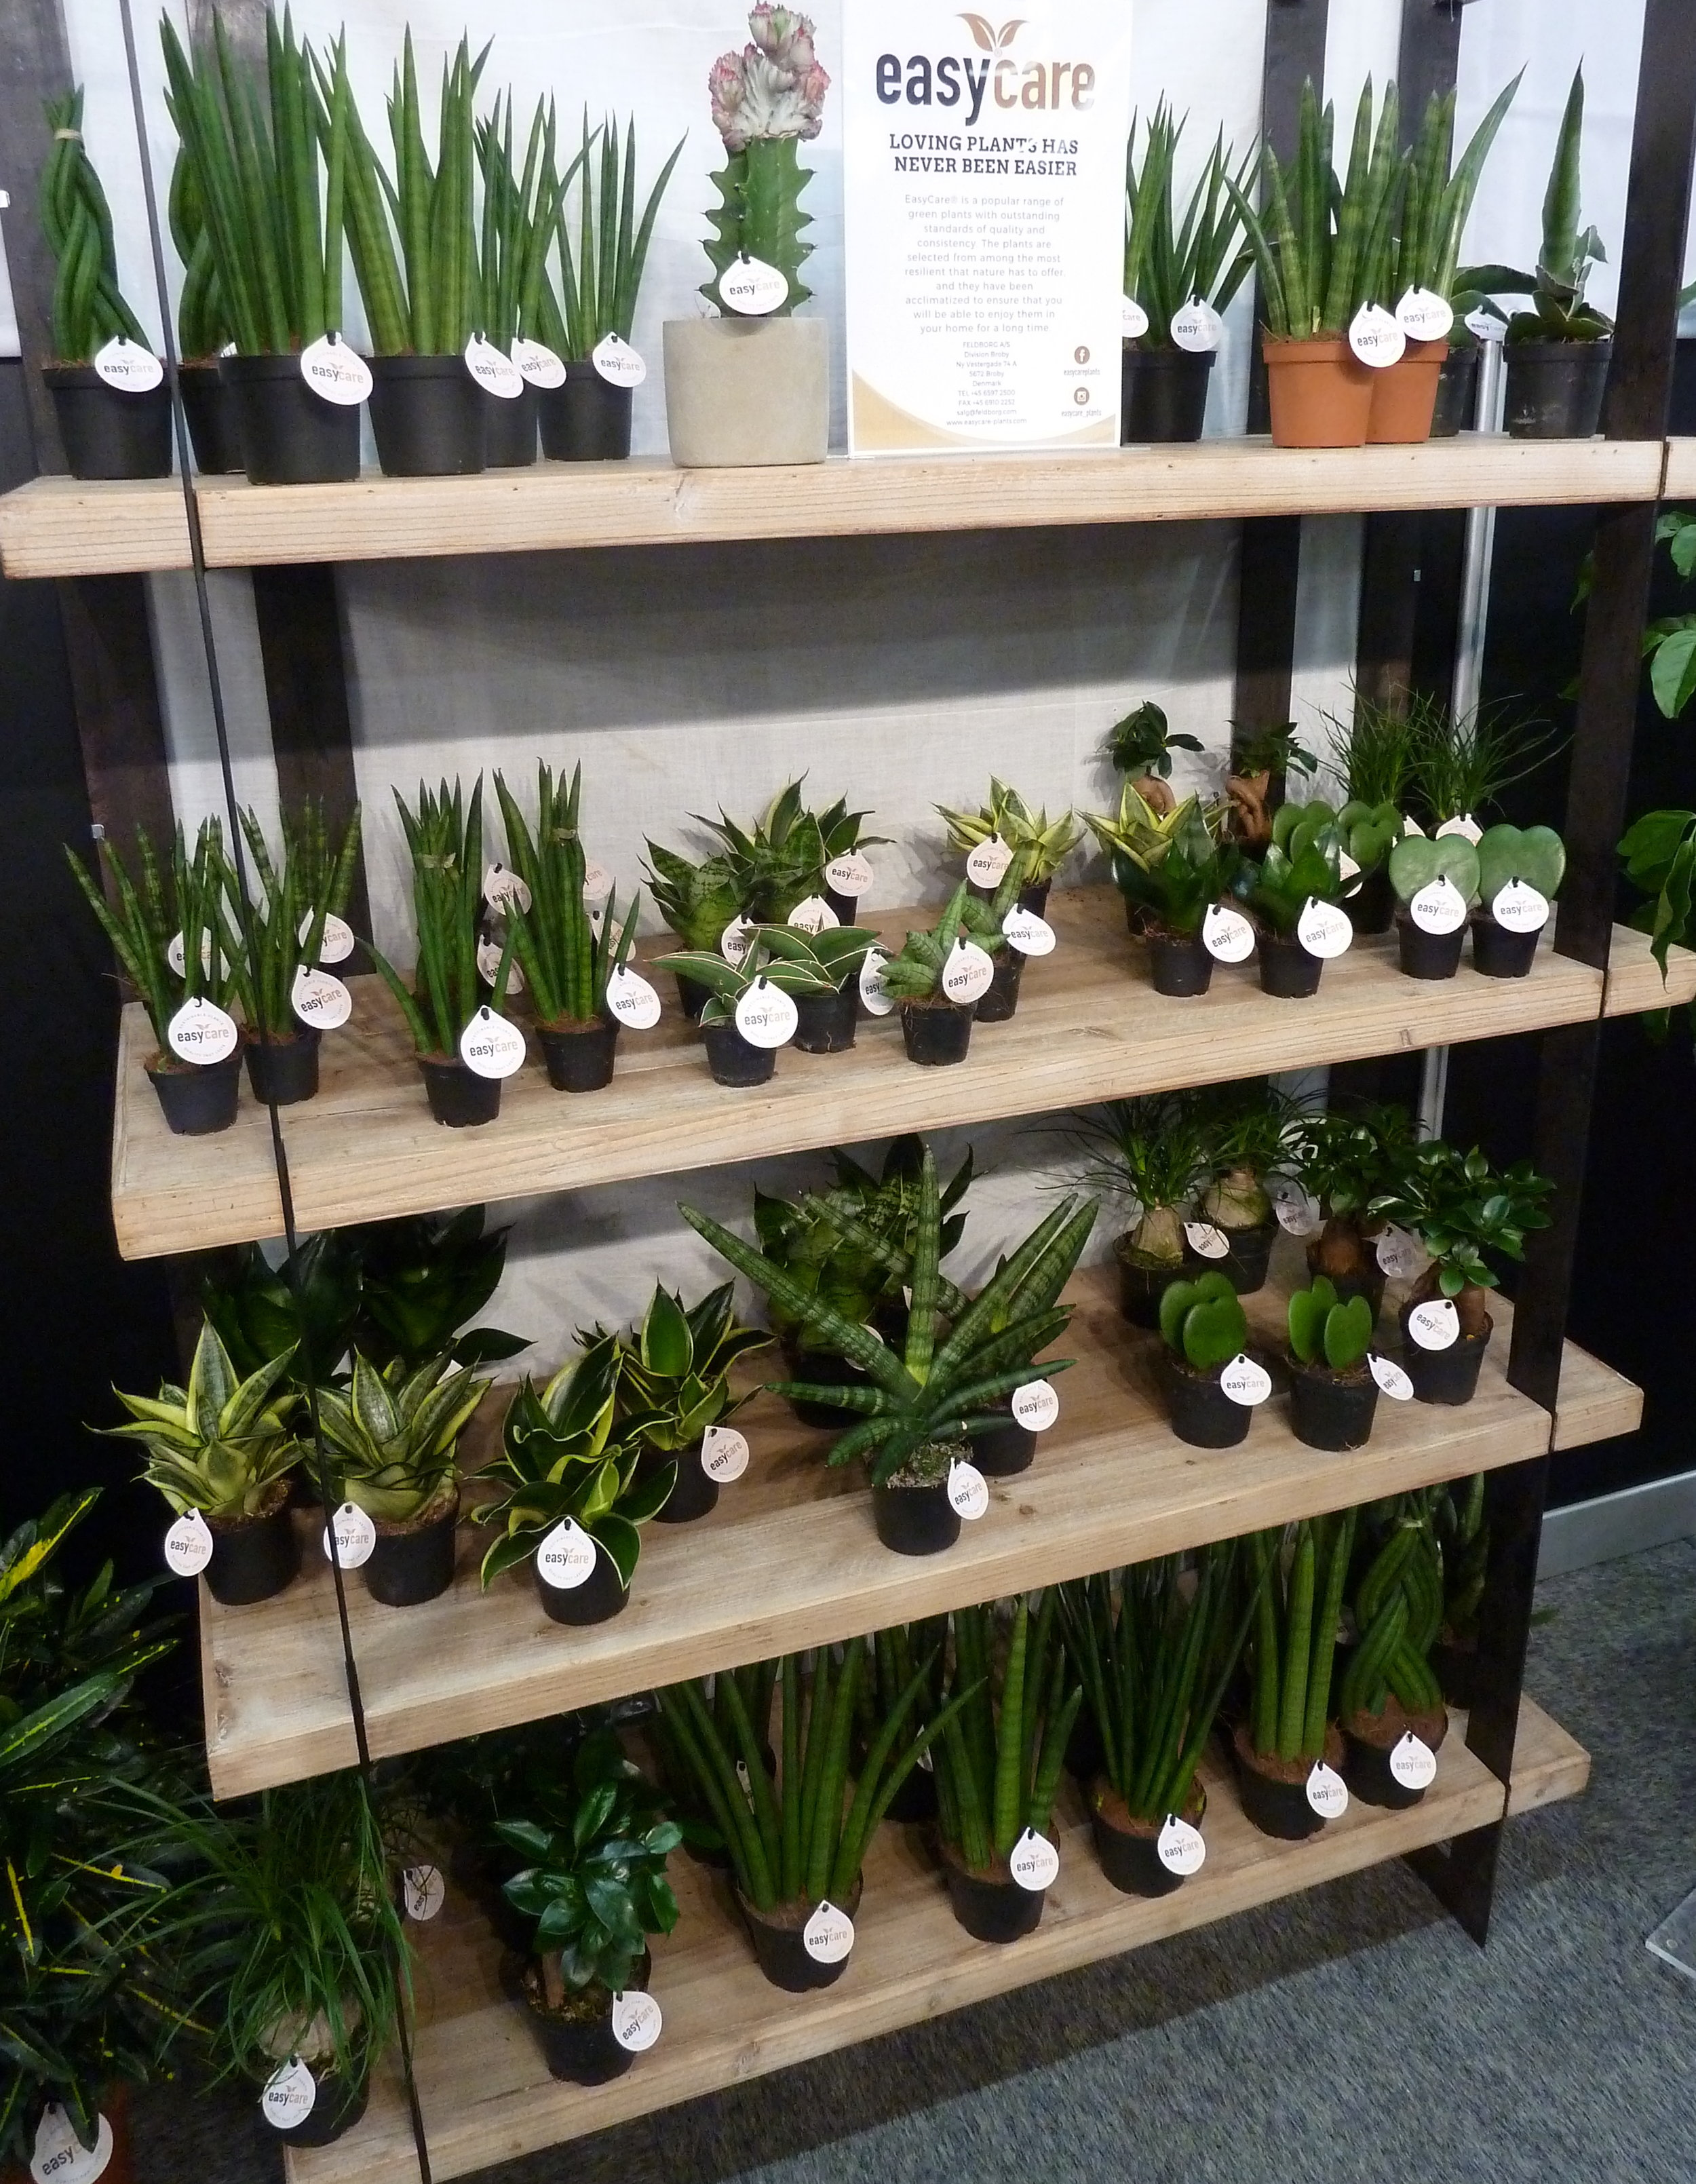 Sansevierias on display